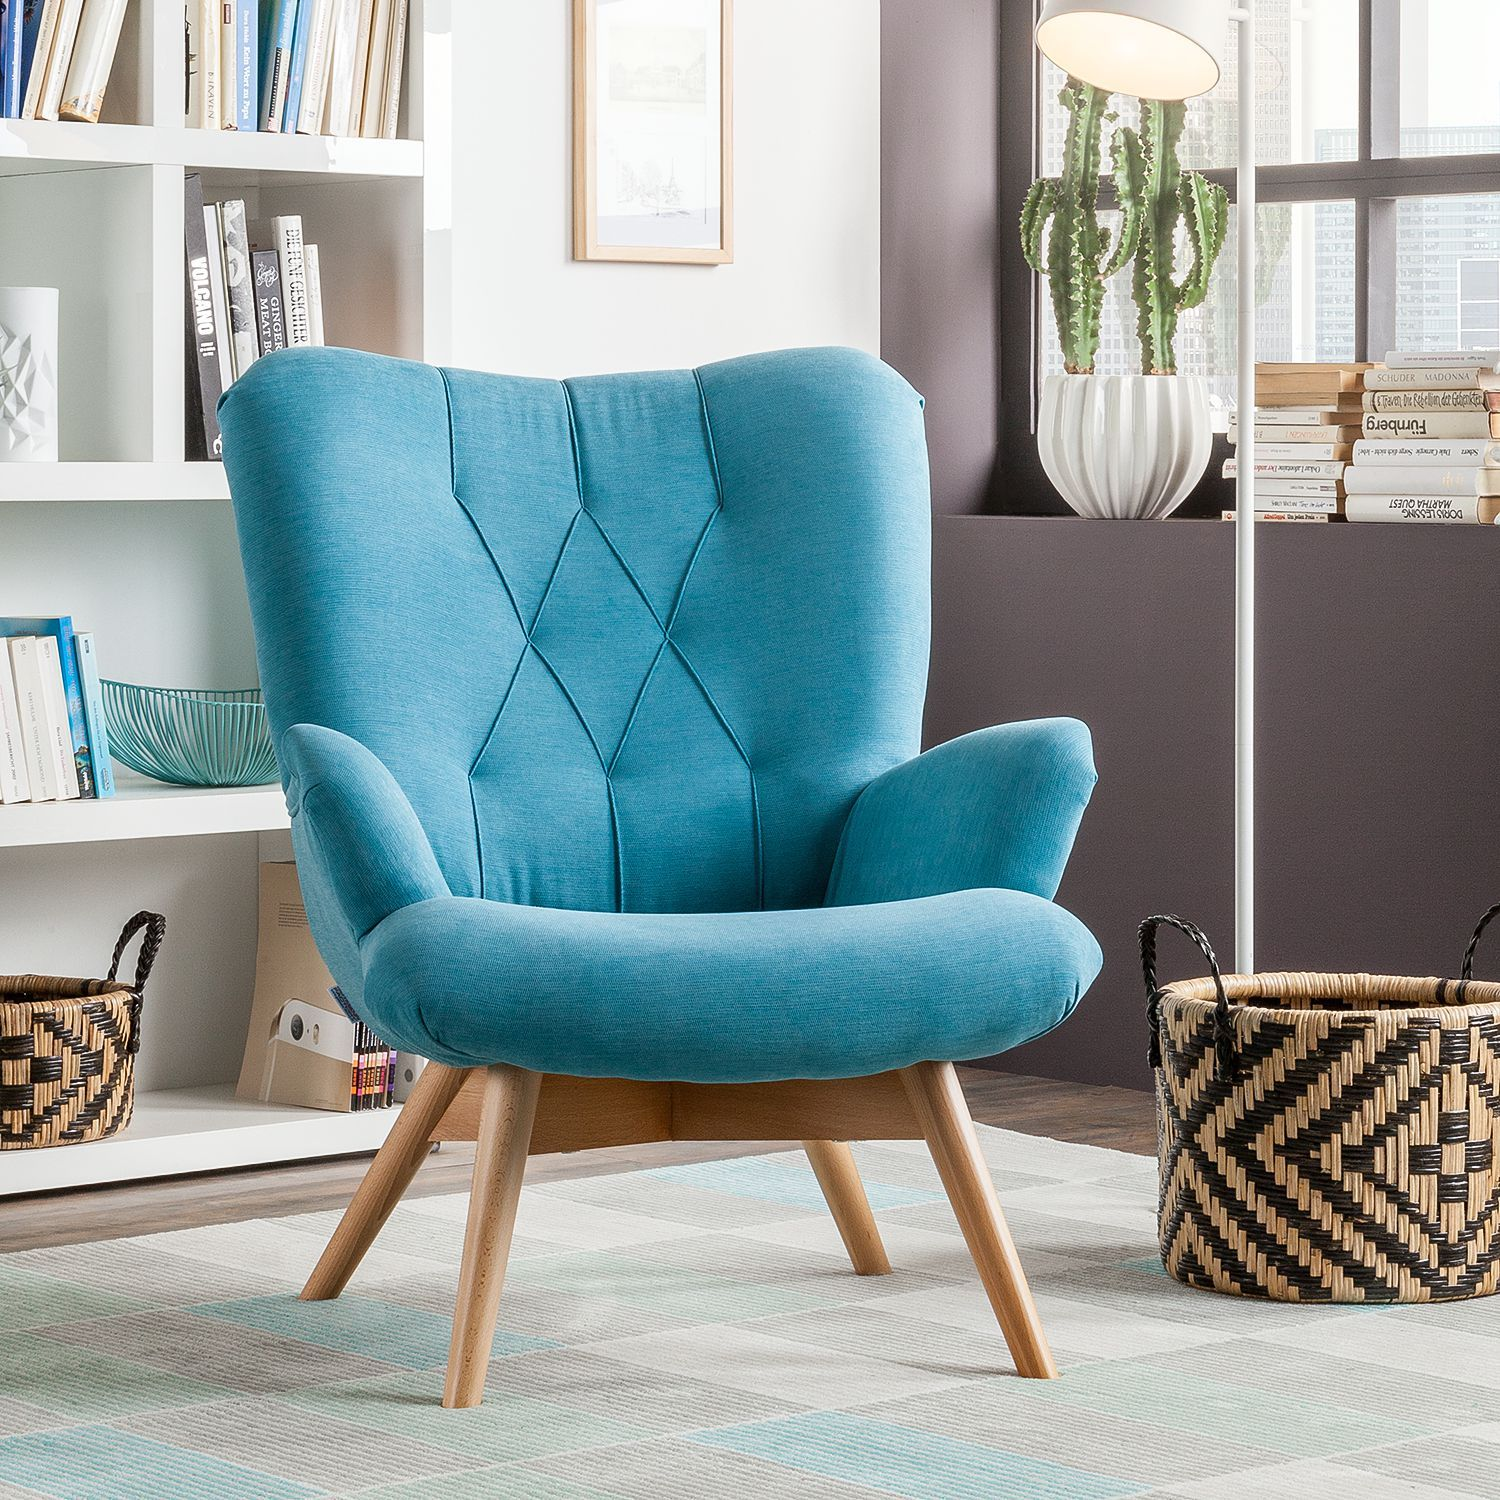 Sessel Aqua Sessel Tias Webstoff Products Sleeper Chair Room Planning Und